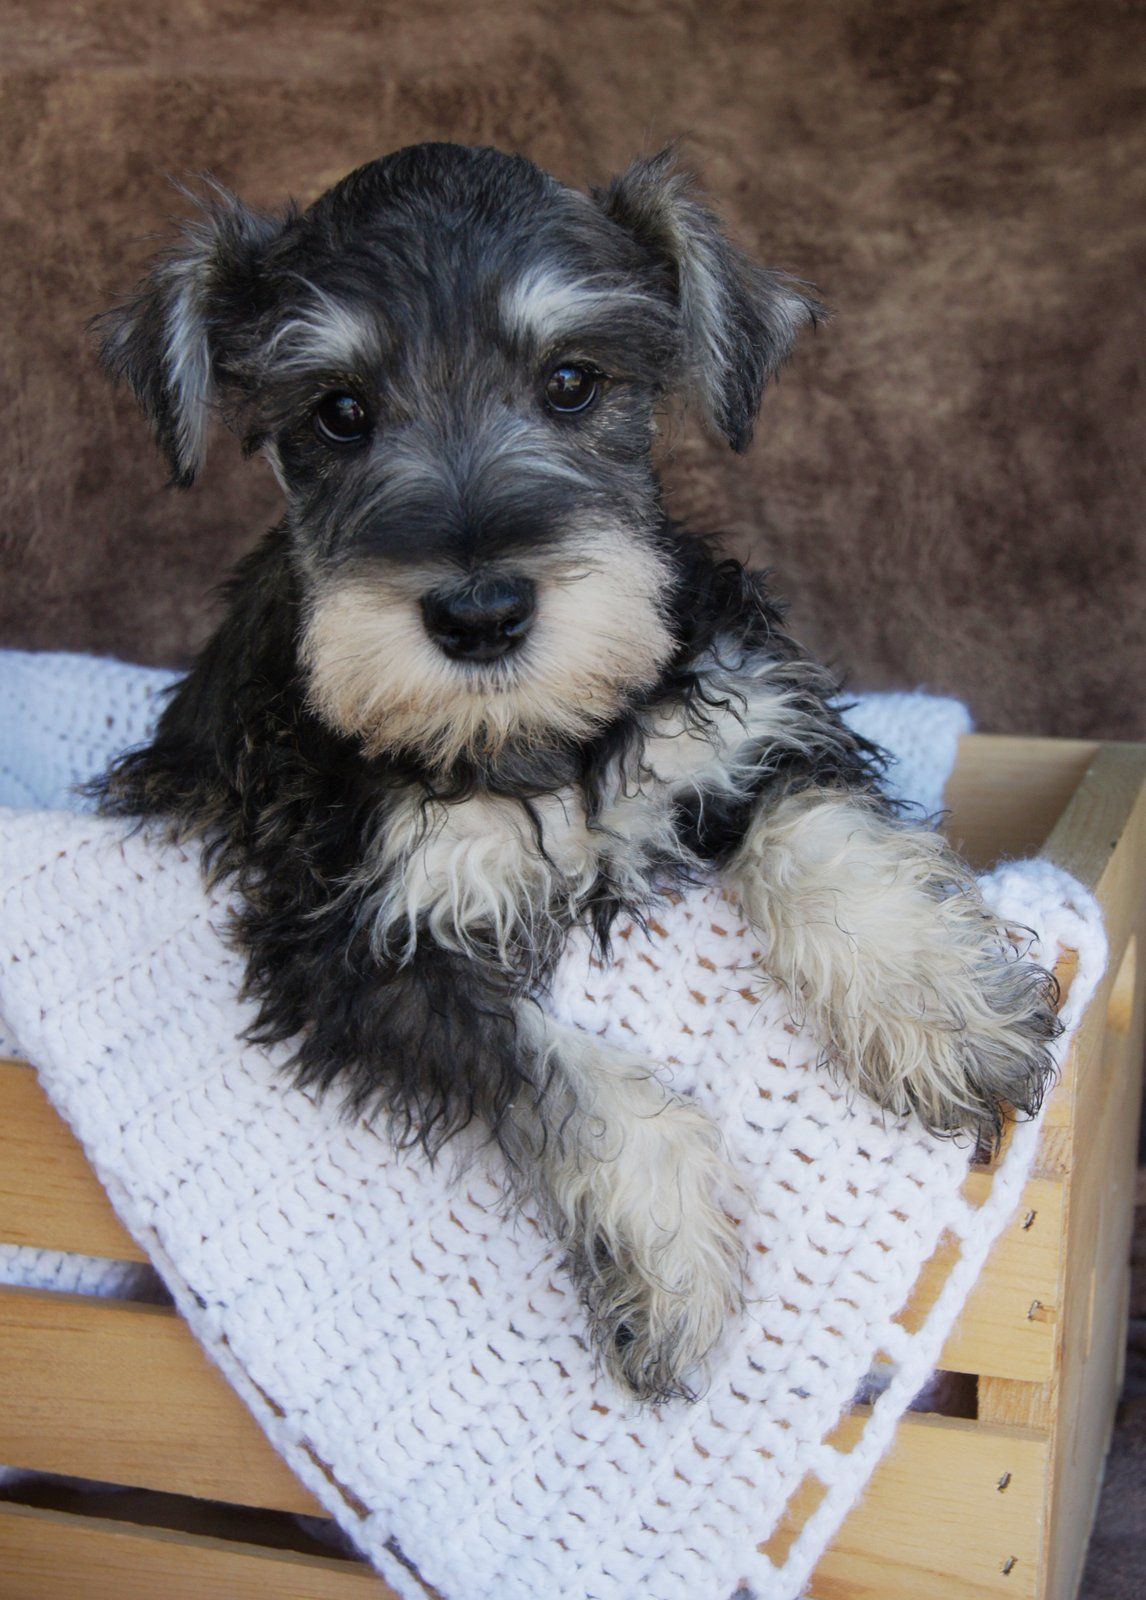 What an adorable little Black and Silver mini Schnauzer